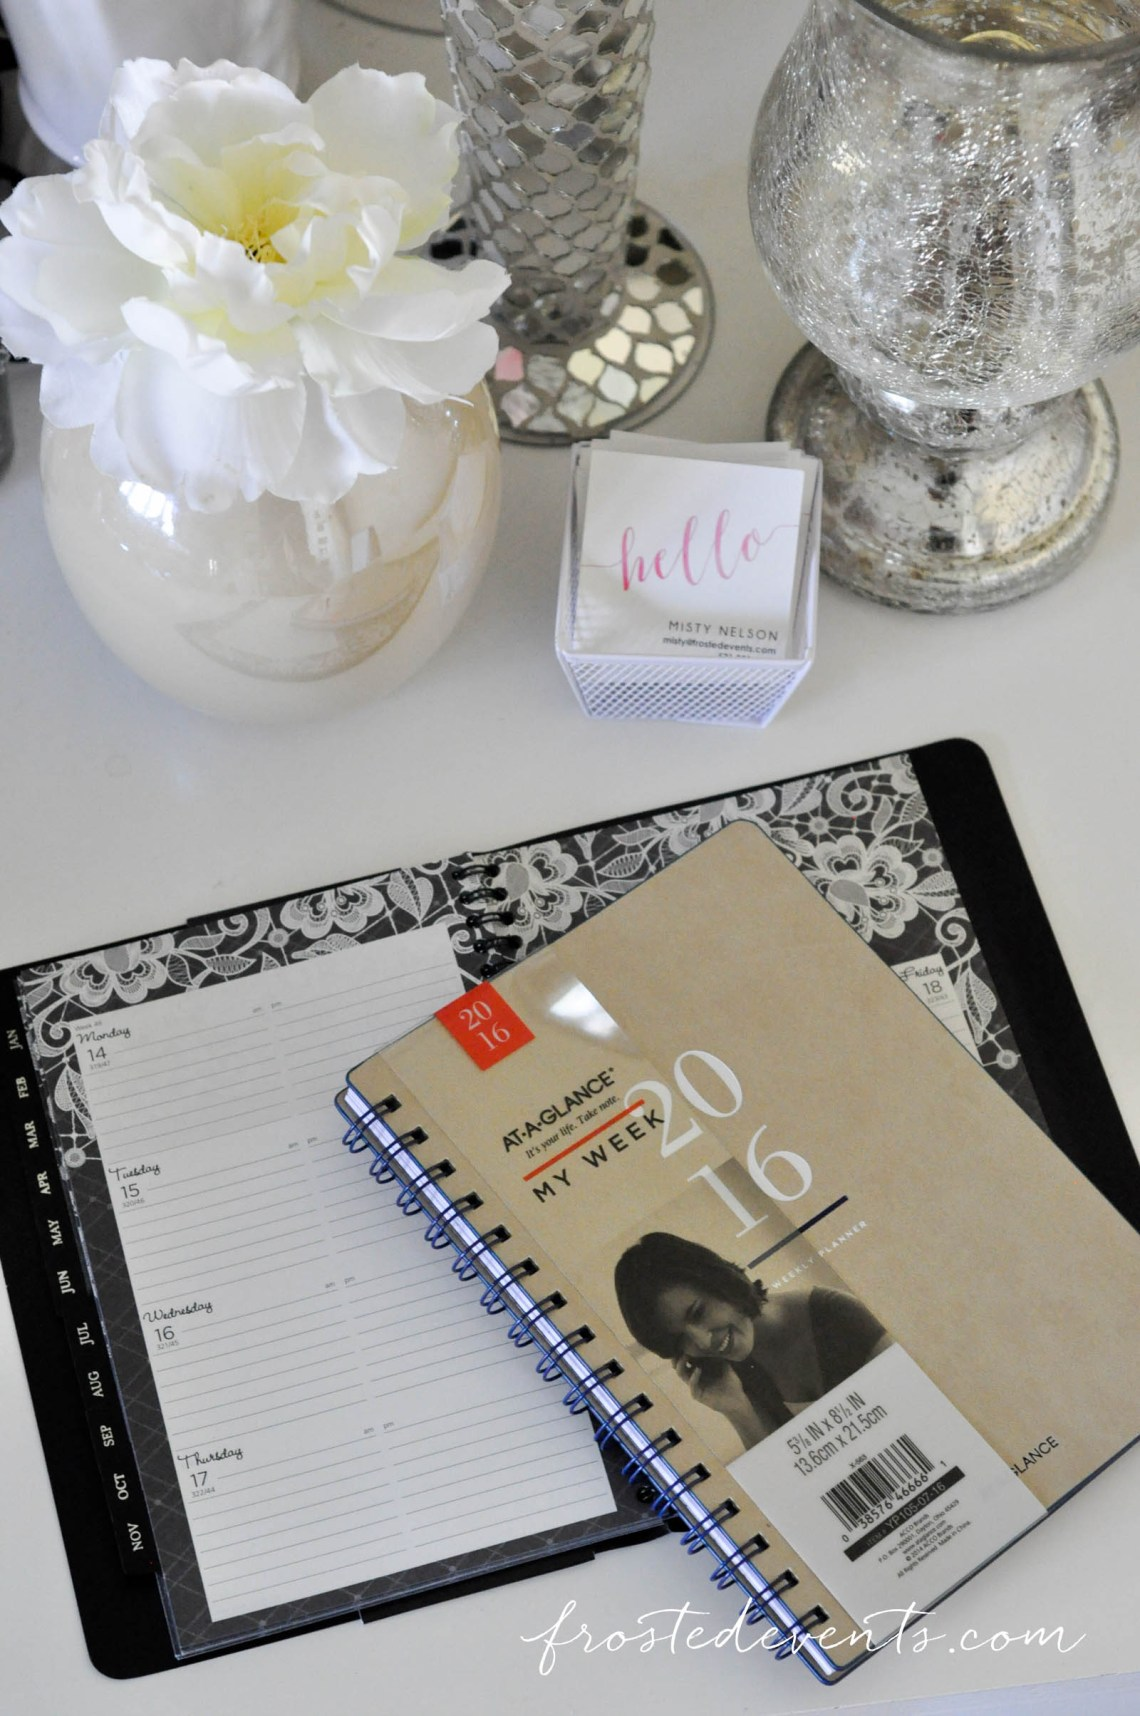 At a Glance Planner Organize Your Live www.frostedevents.com